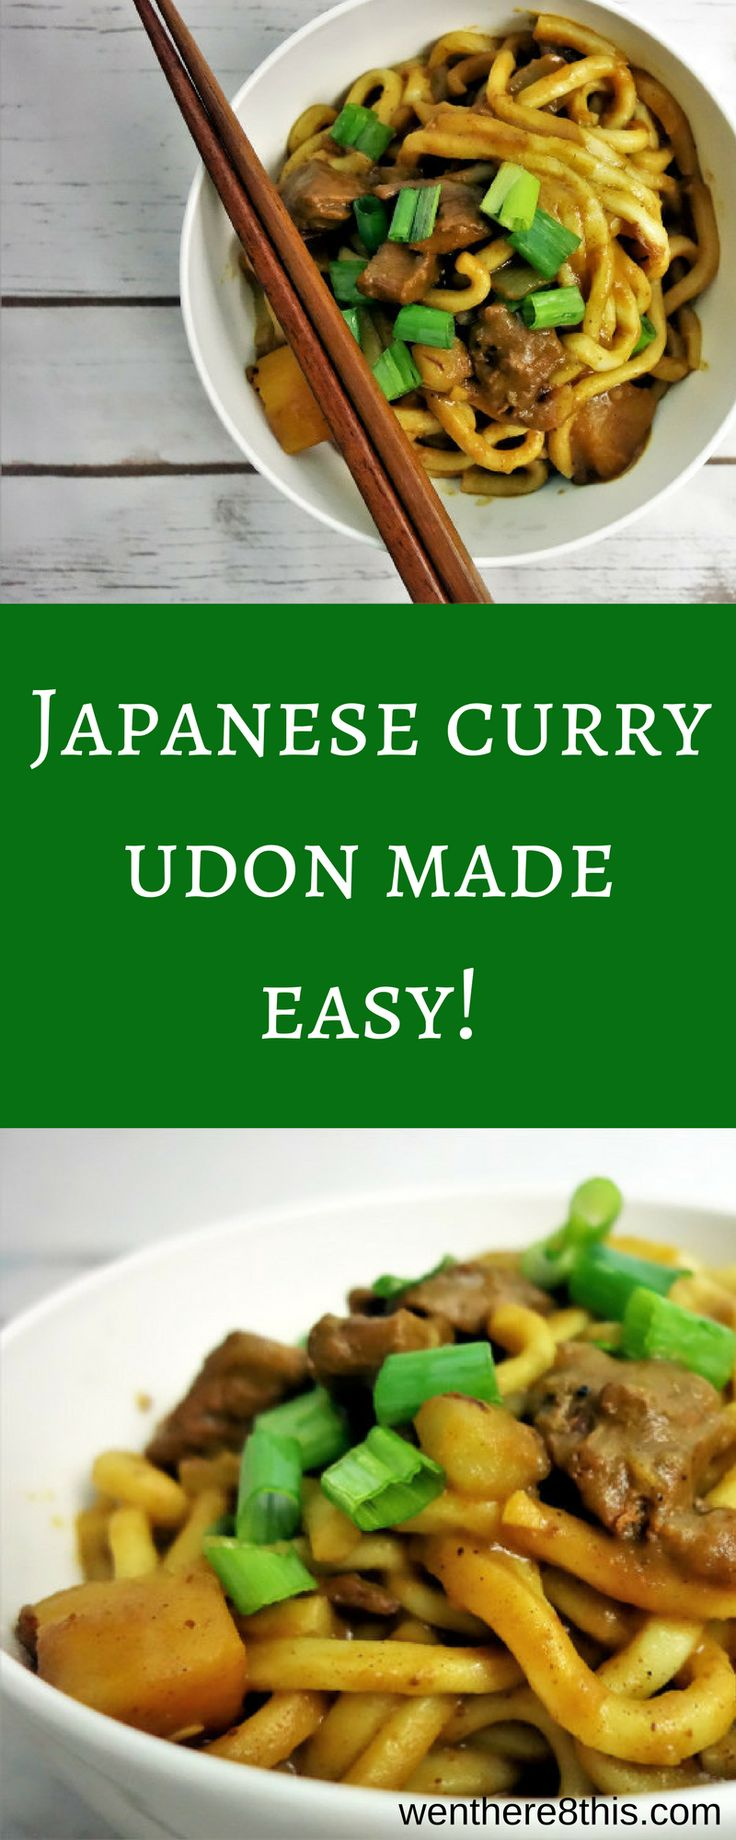 Learn how to make this Japanese Beef Curry Udon (Kare Udon) - it's the perfect comfort food!  Japanese food, comfort food, curry, japanese curry udon recipe, curry recipe, Japanese curry udon soup, Japanese curry udon